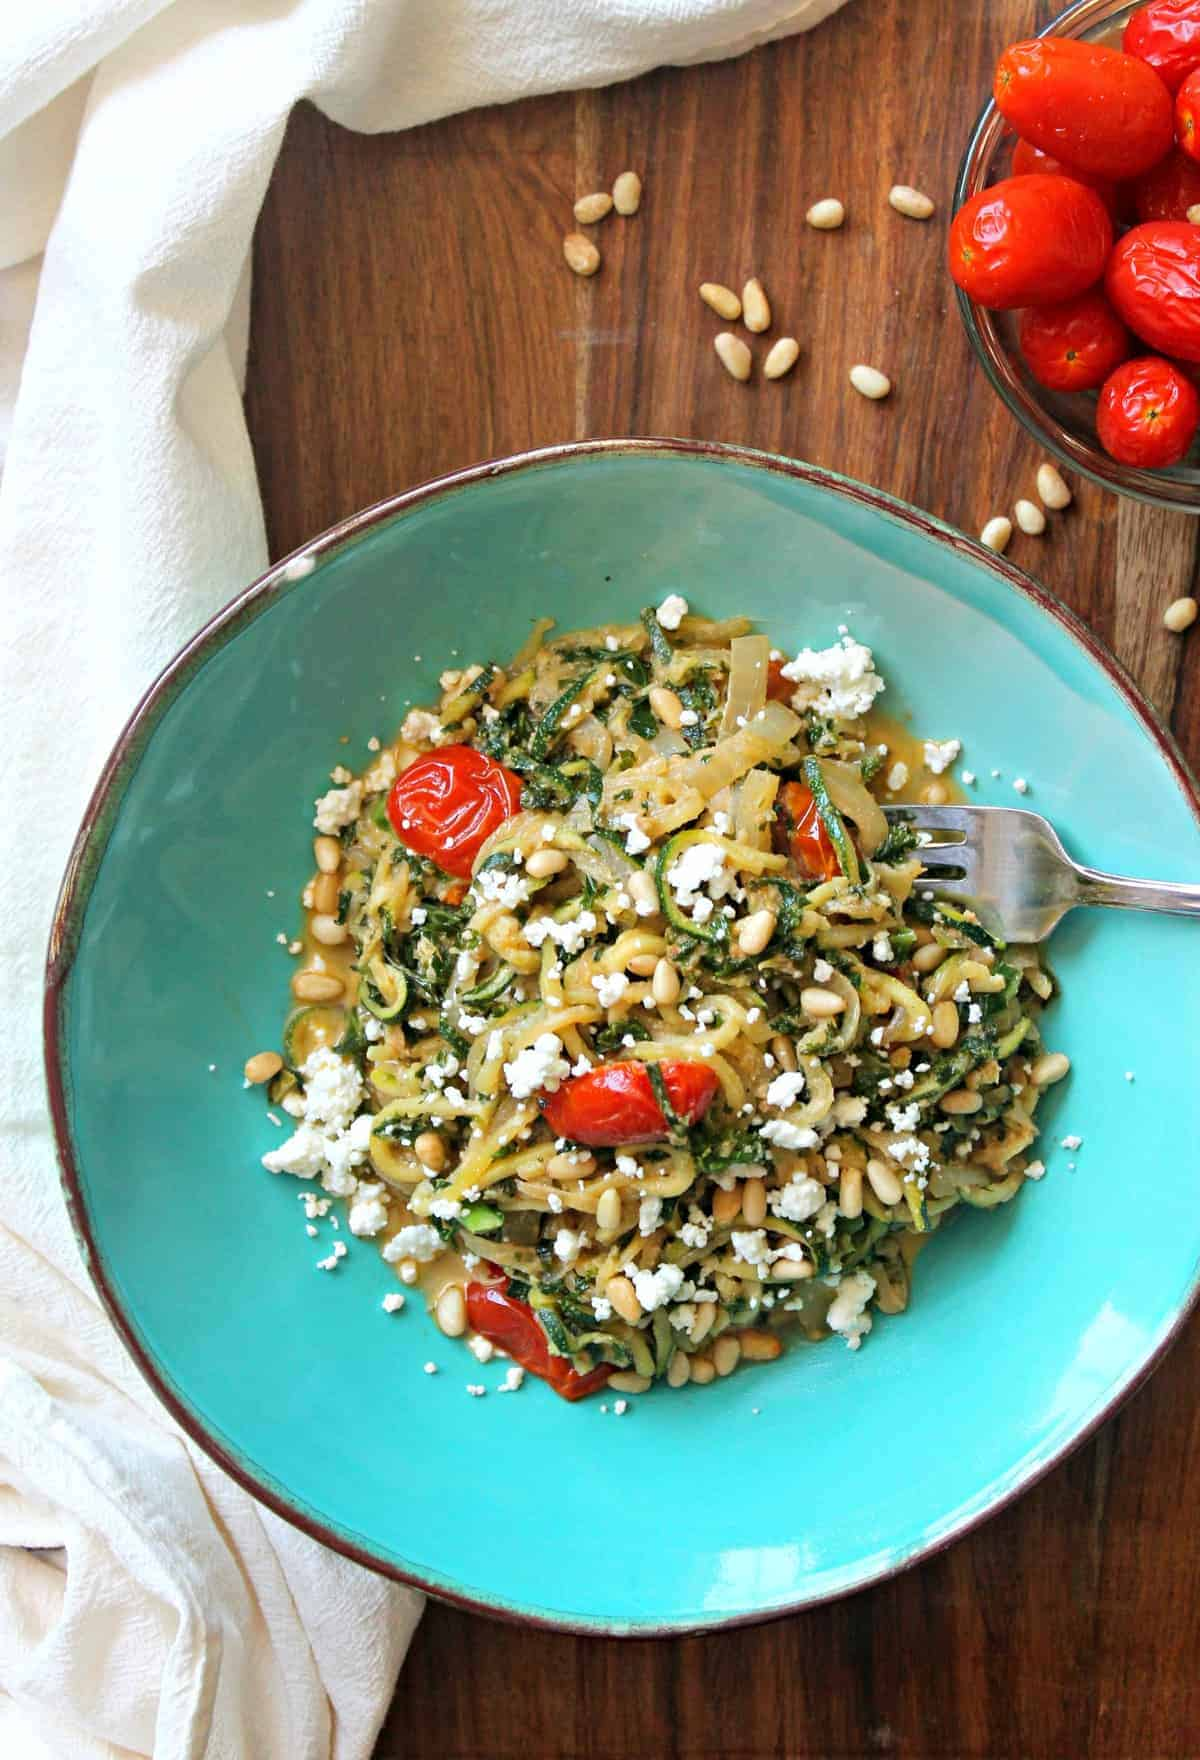 This tender zucchini pasta is sauteed and mixed with hearty kale, onions, and topped with goat cheese and roasted tomatoes